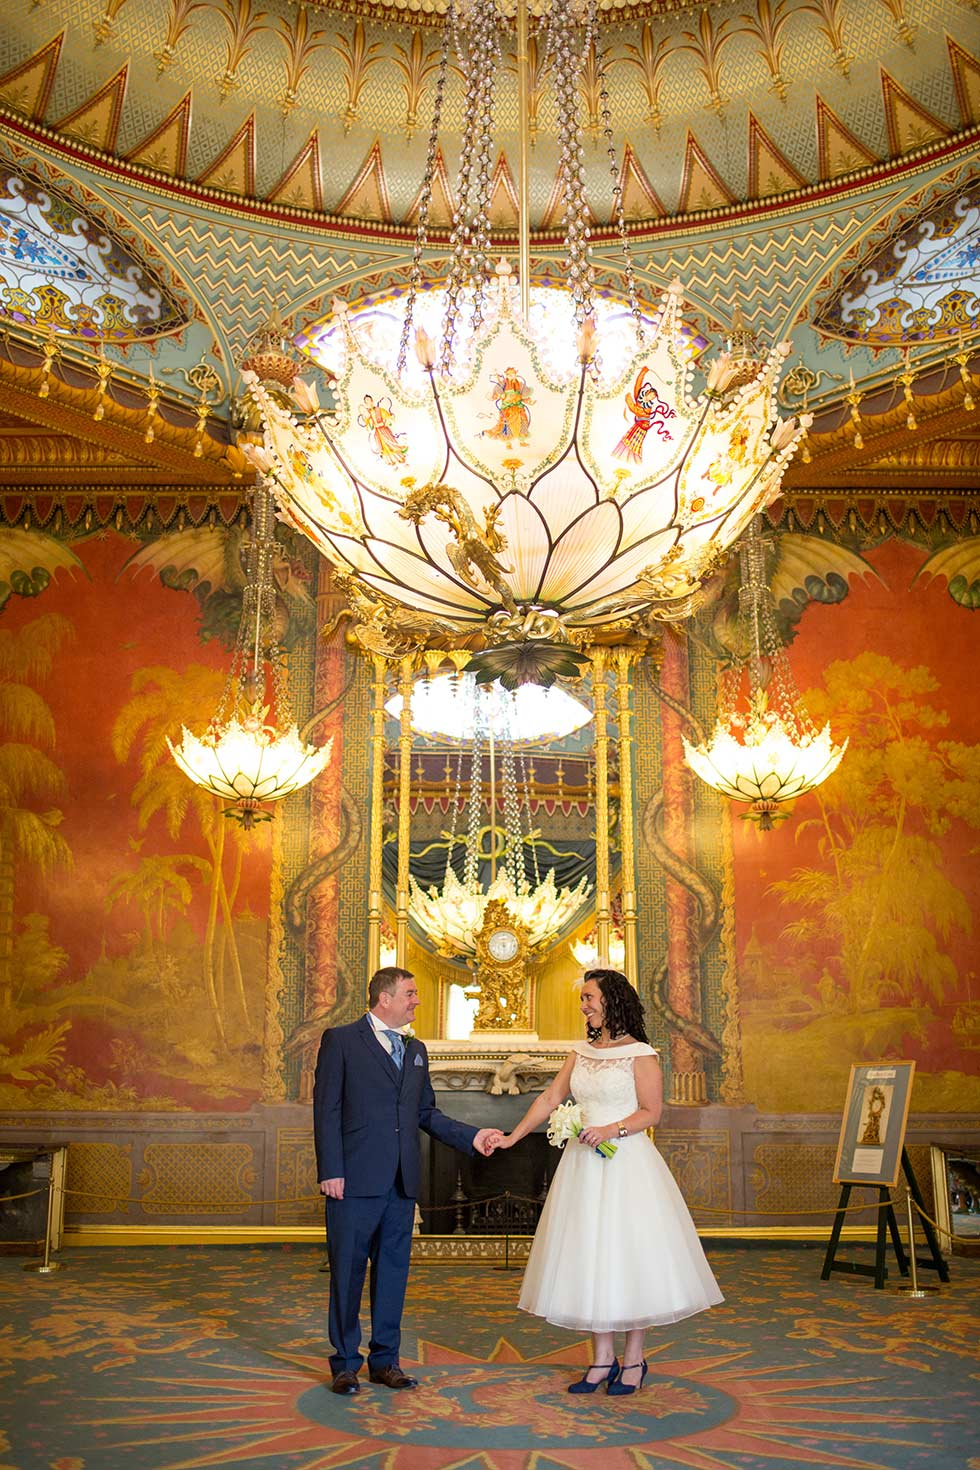 music room brighton royal pavilion wedding - Royal Wedding Photography